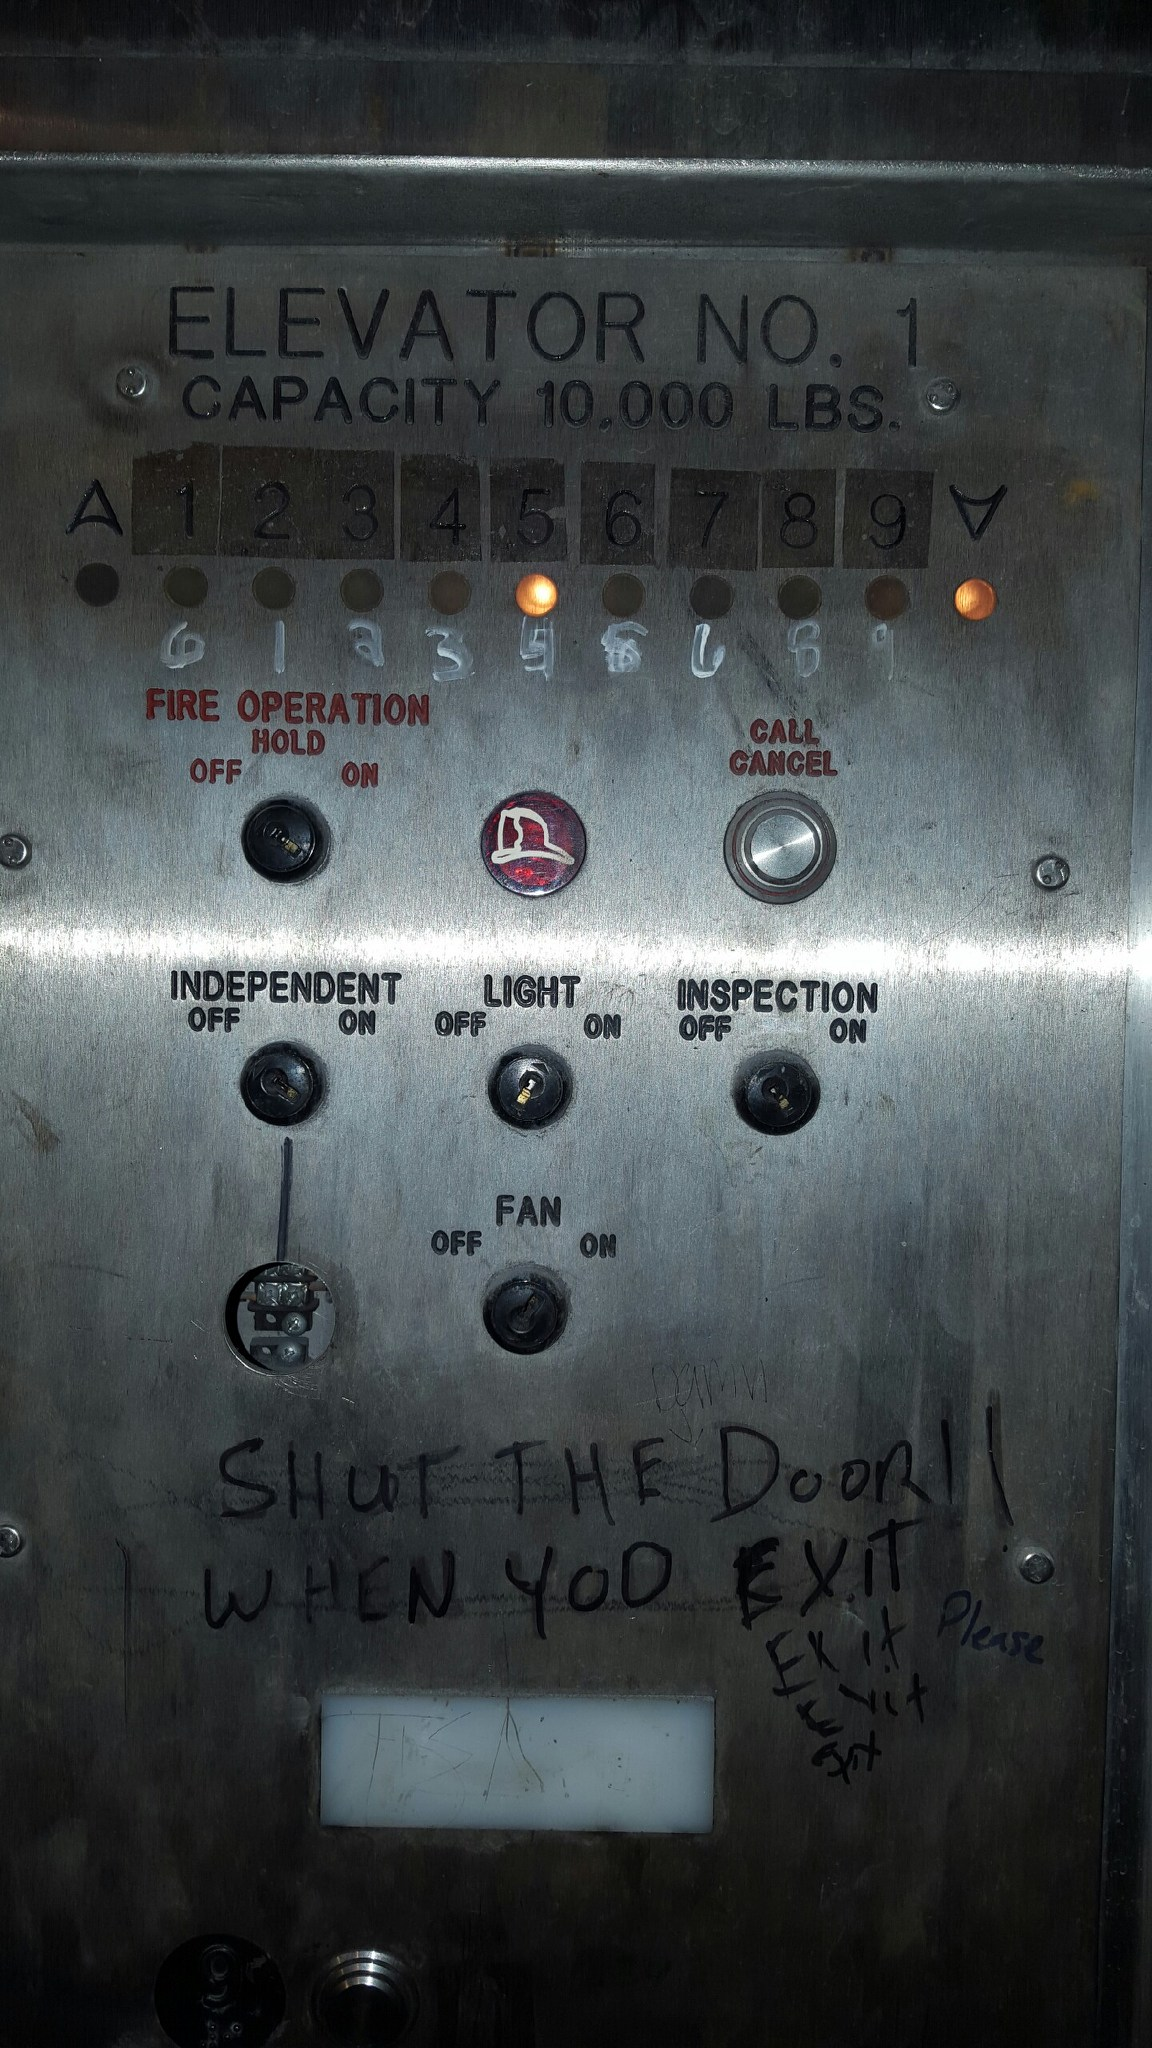 Elevator Vandalism Can Be Expensive!